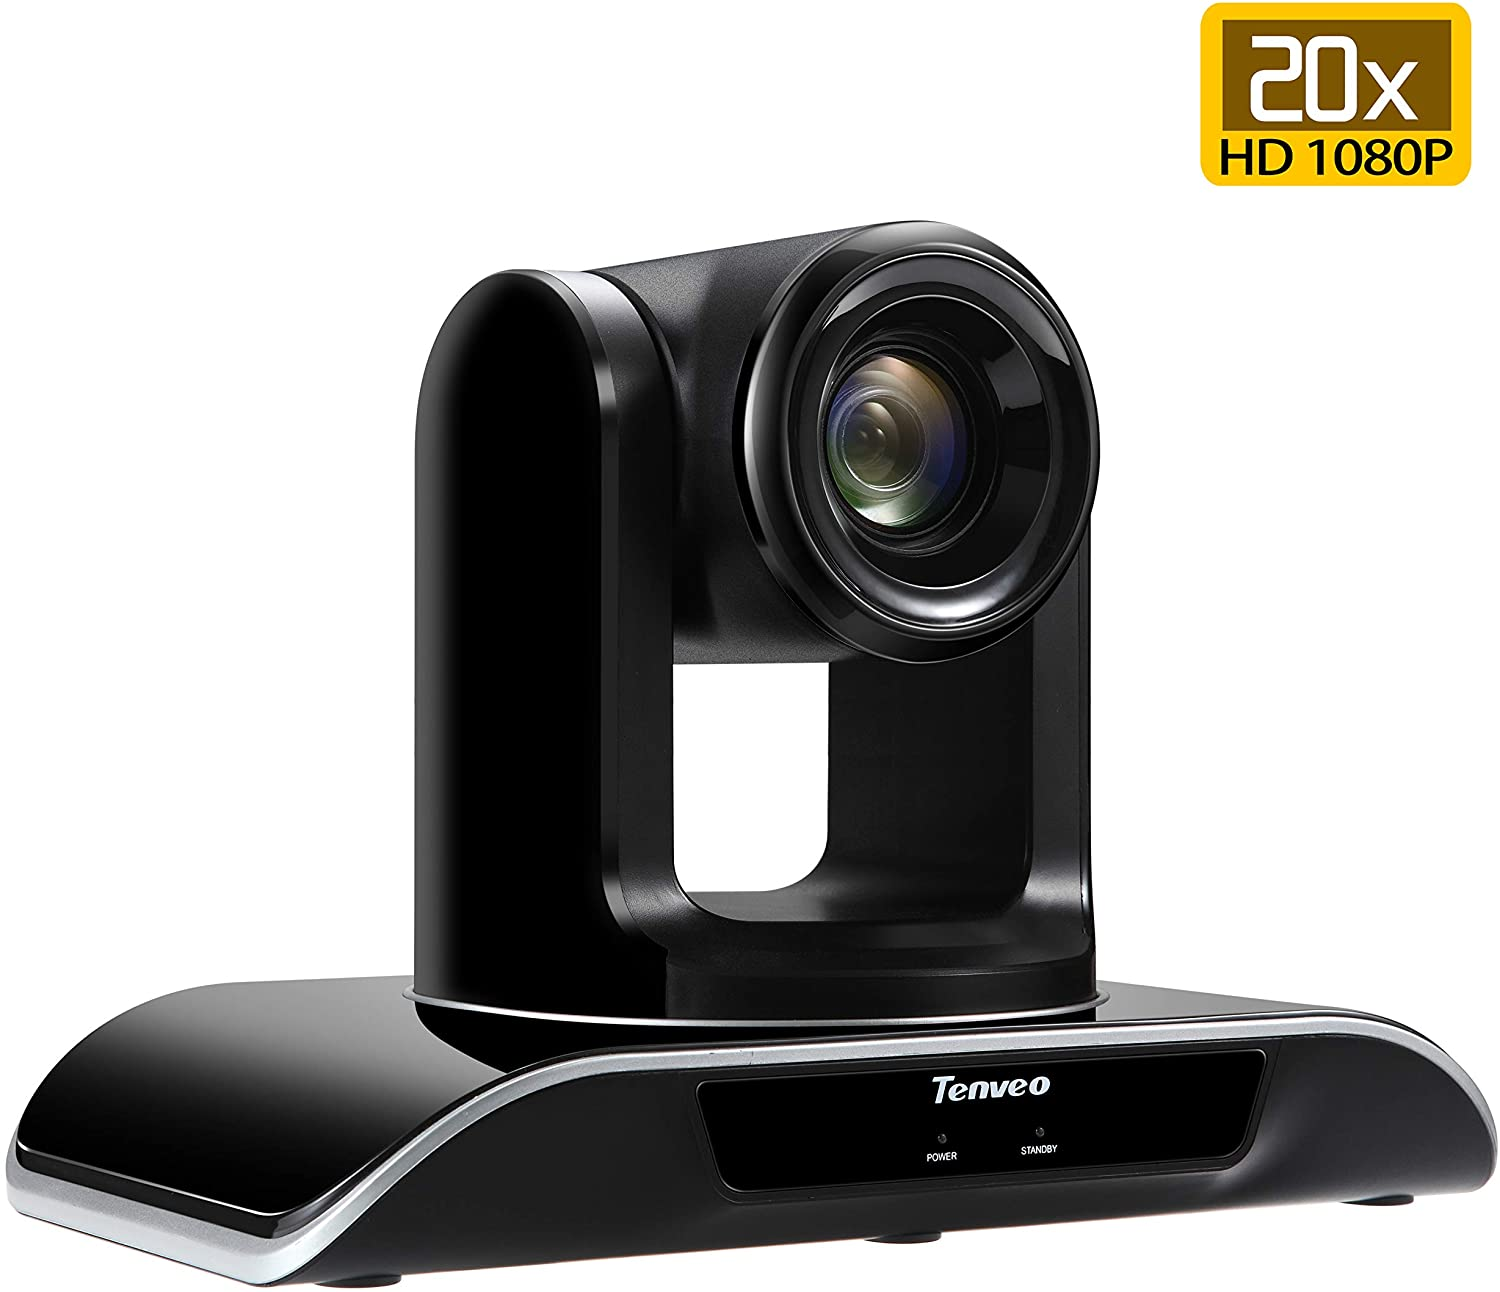 Tenveo 20X Optical Zoom Video Conference Camera Full HD 1080p USB PTZ Camera for Business Meetings